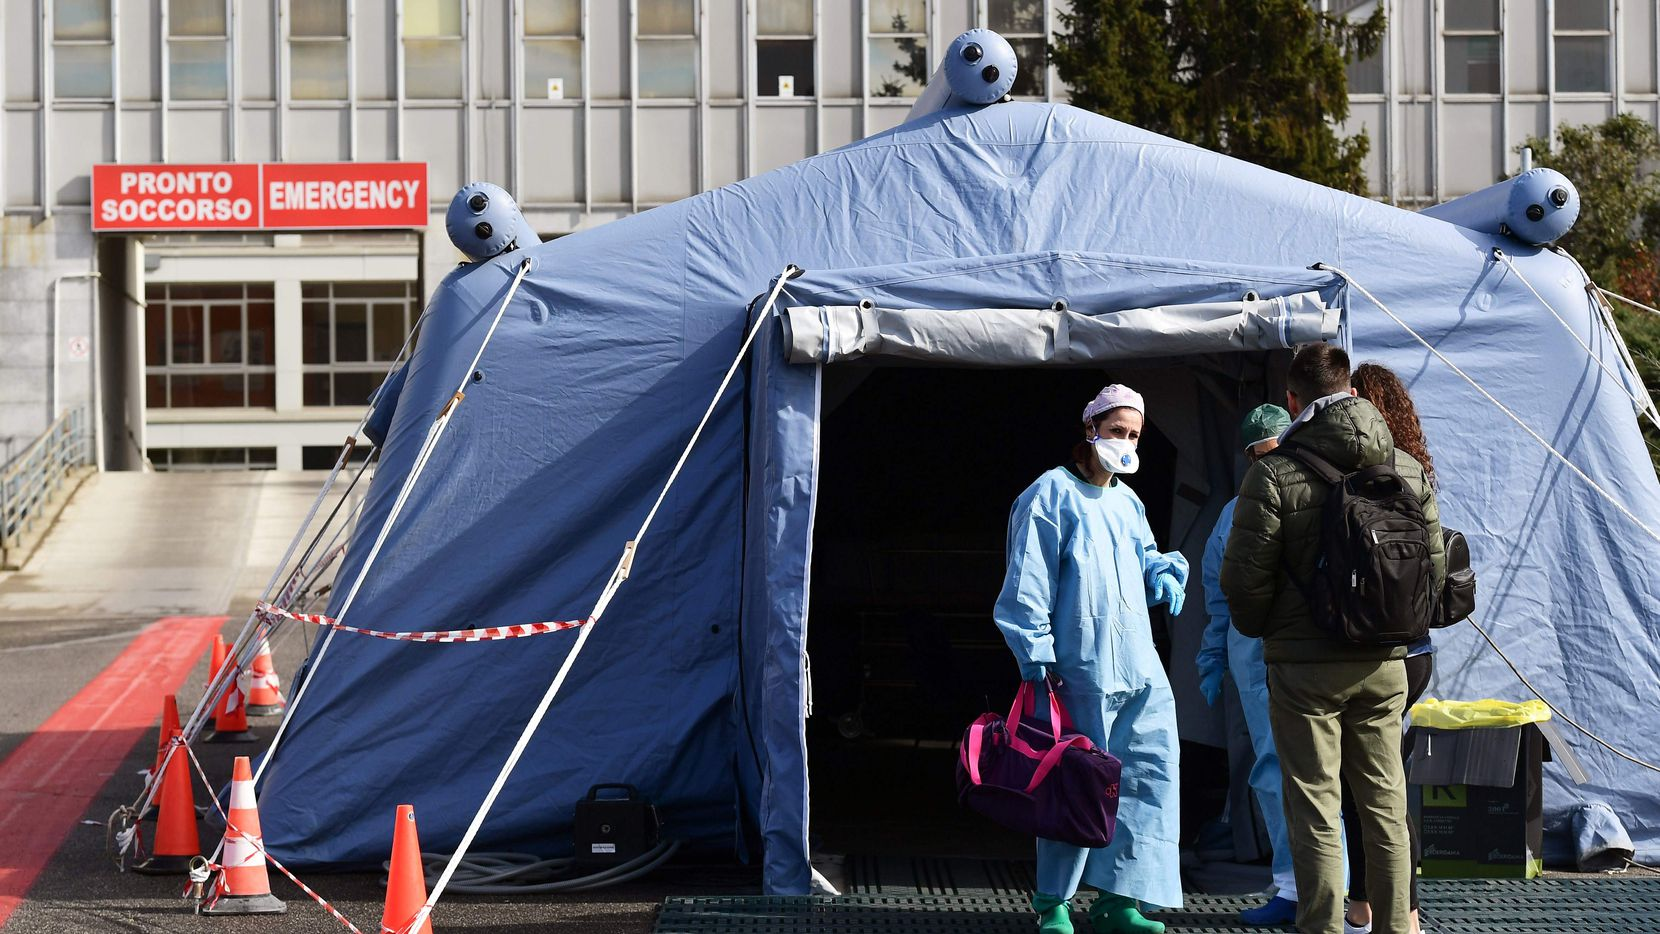 People arrive at a pre-triage medical tent in front of a hospital in Cremona, Italy, on Wednesday.